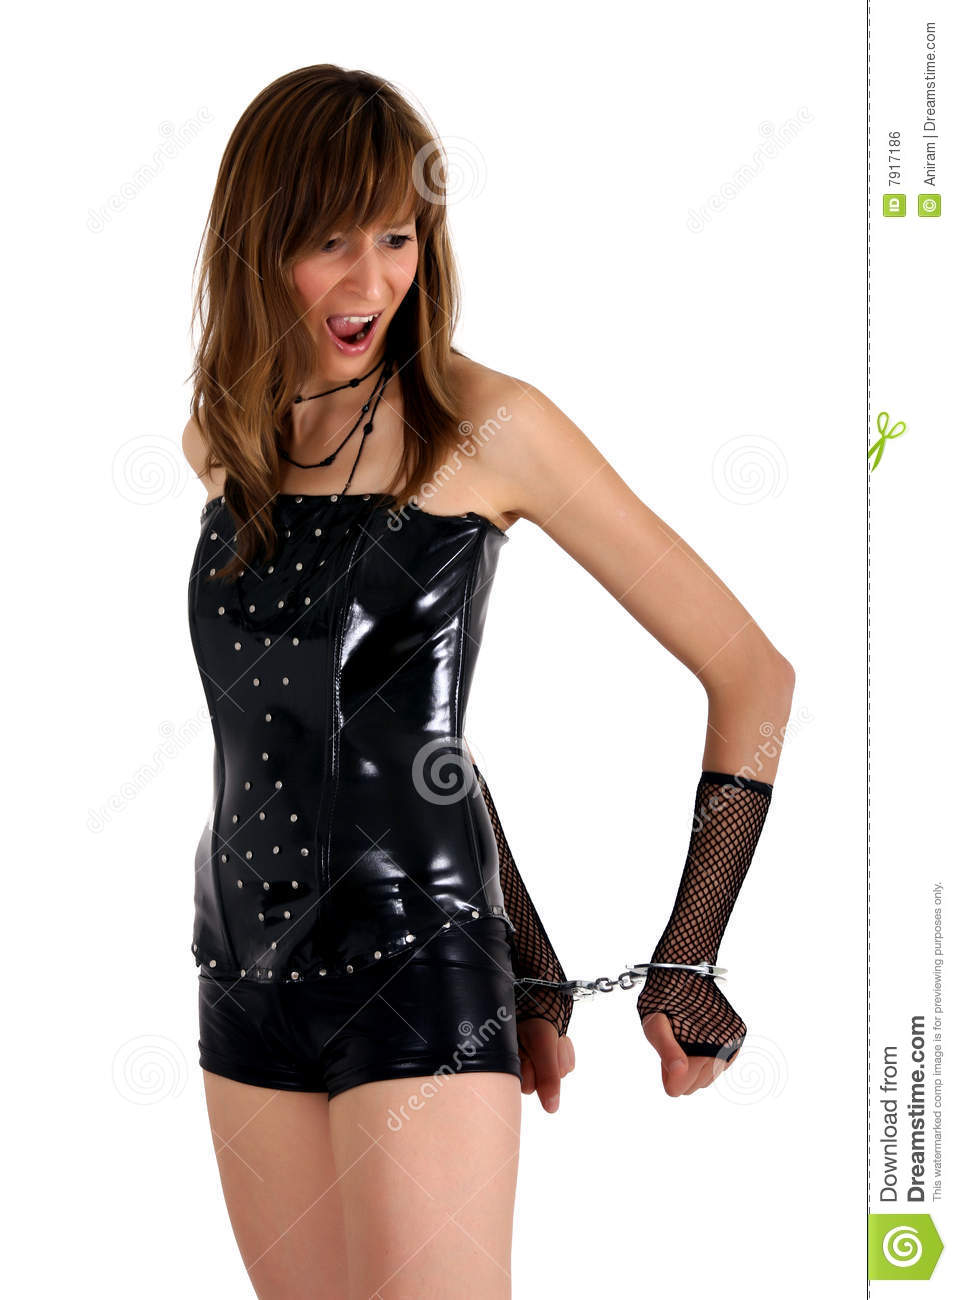 Angry woman with handcuff